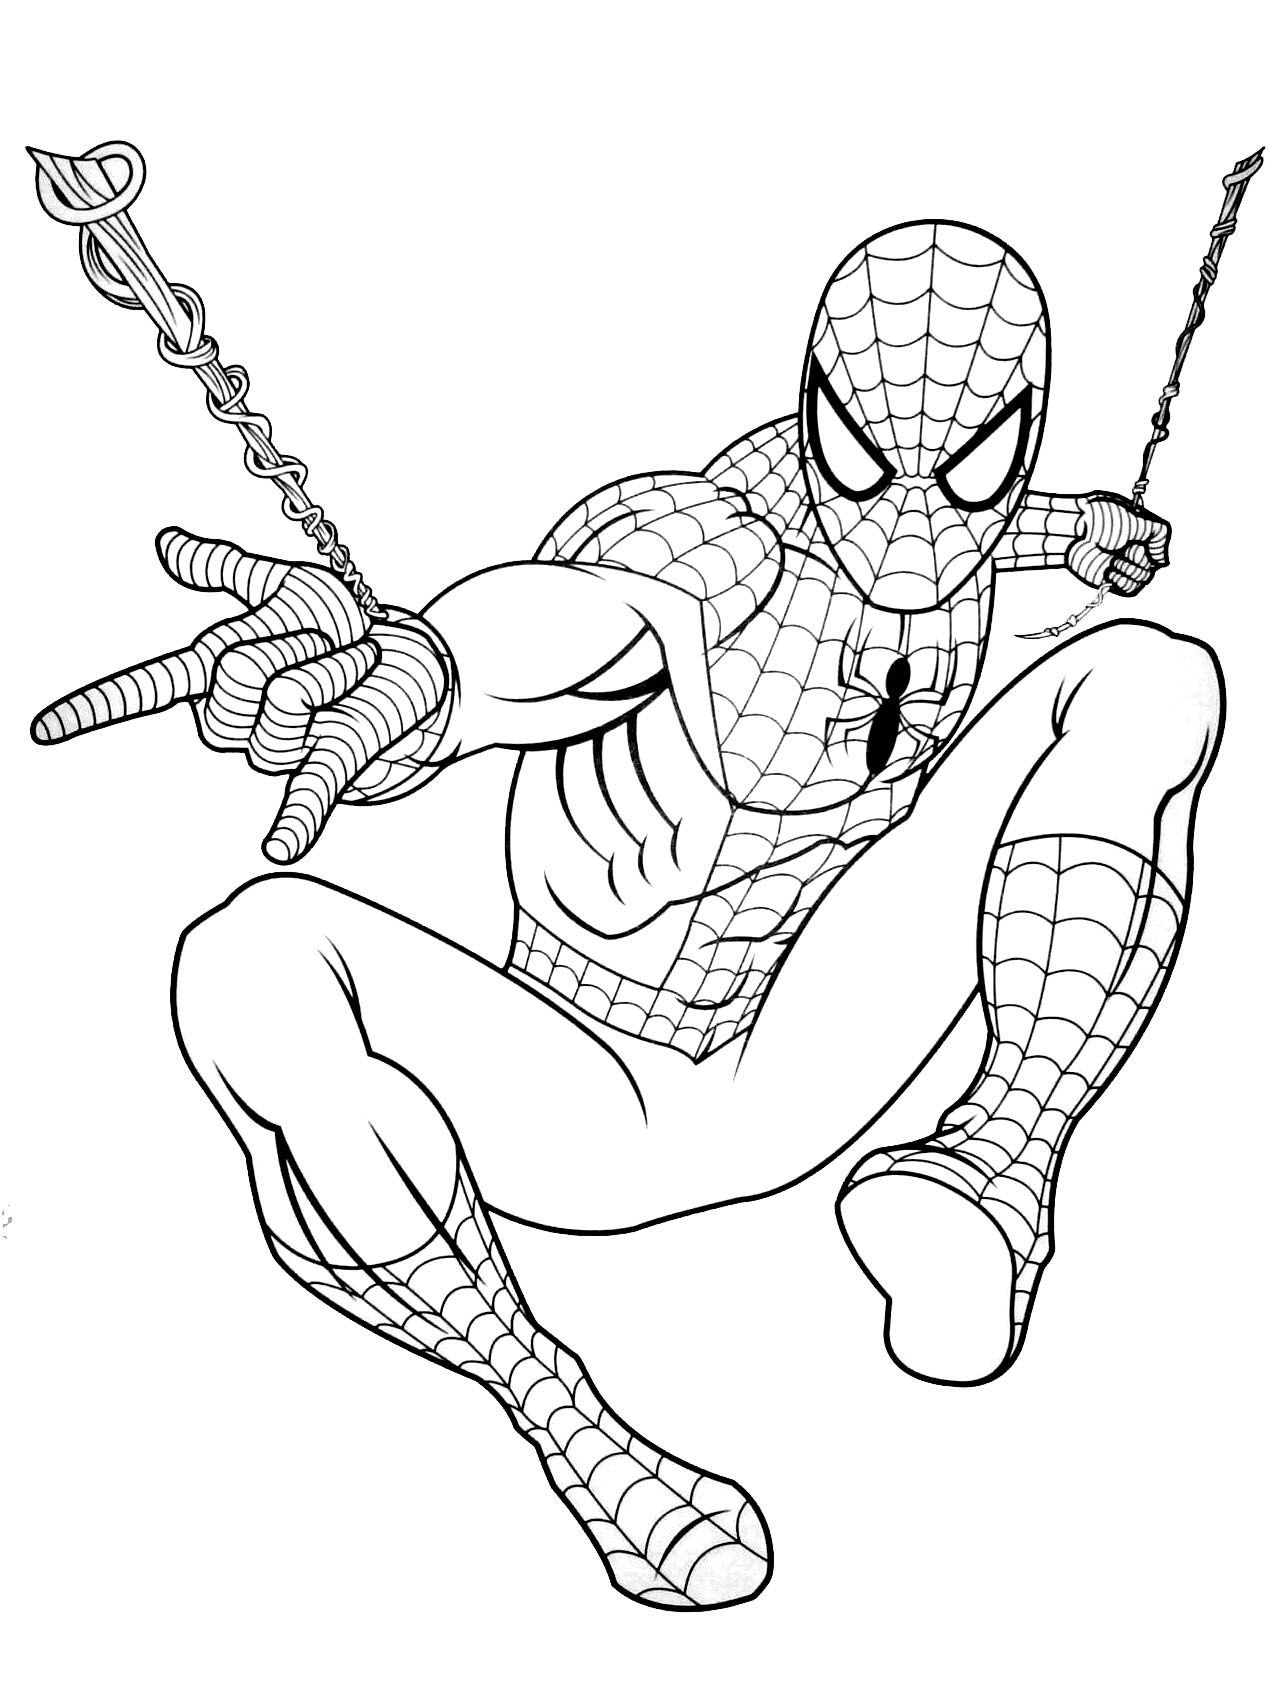 20 dessins de coloriage spiderman gratuit imprimer - Spider man en dessin ...